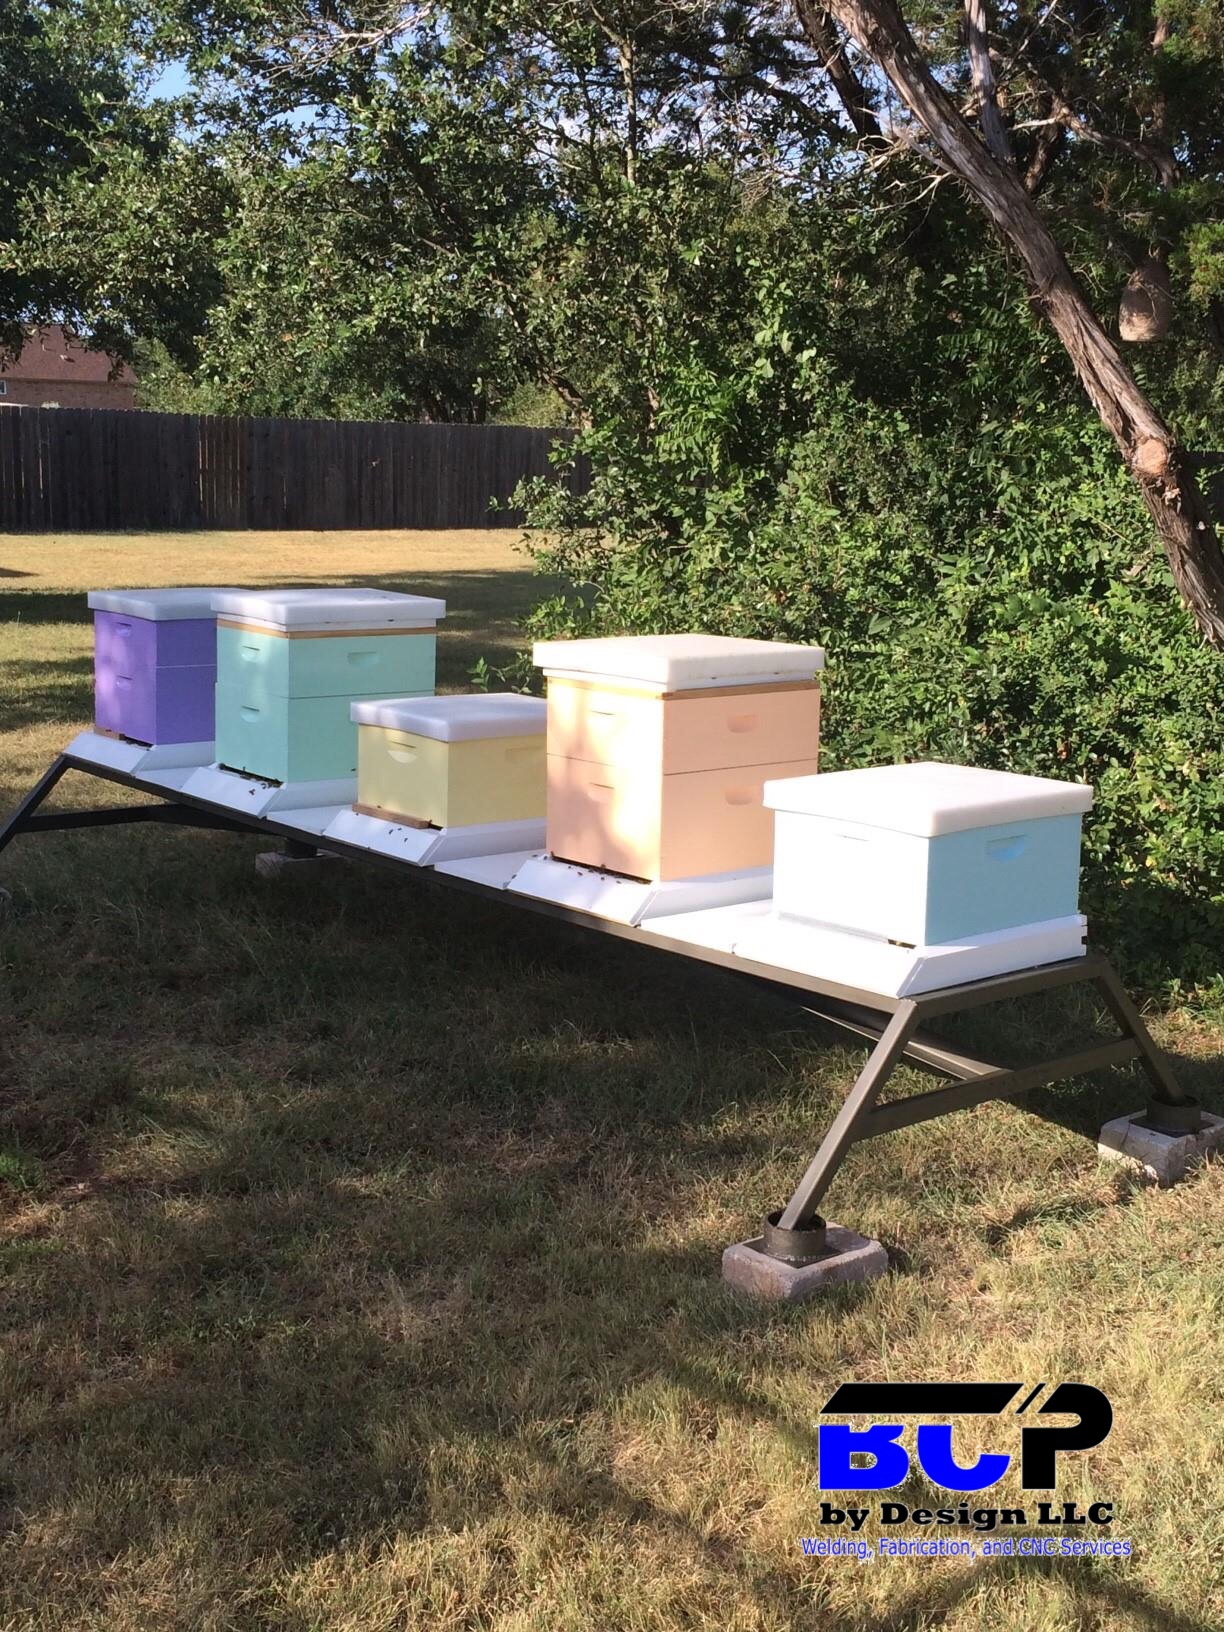 Hive Stand Designs : Bee c hive stands bee hive stand honey bee stand metal hive